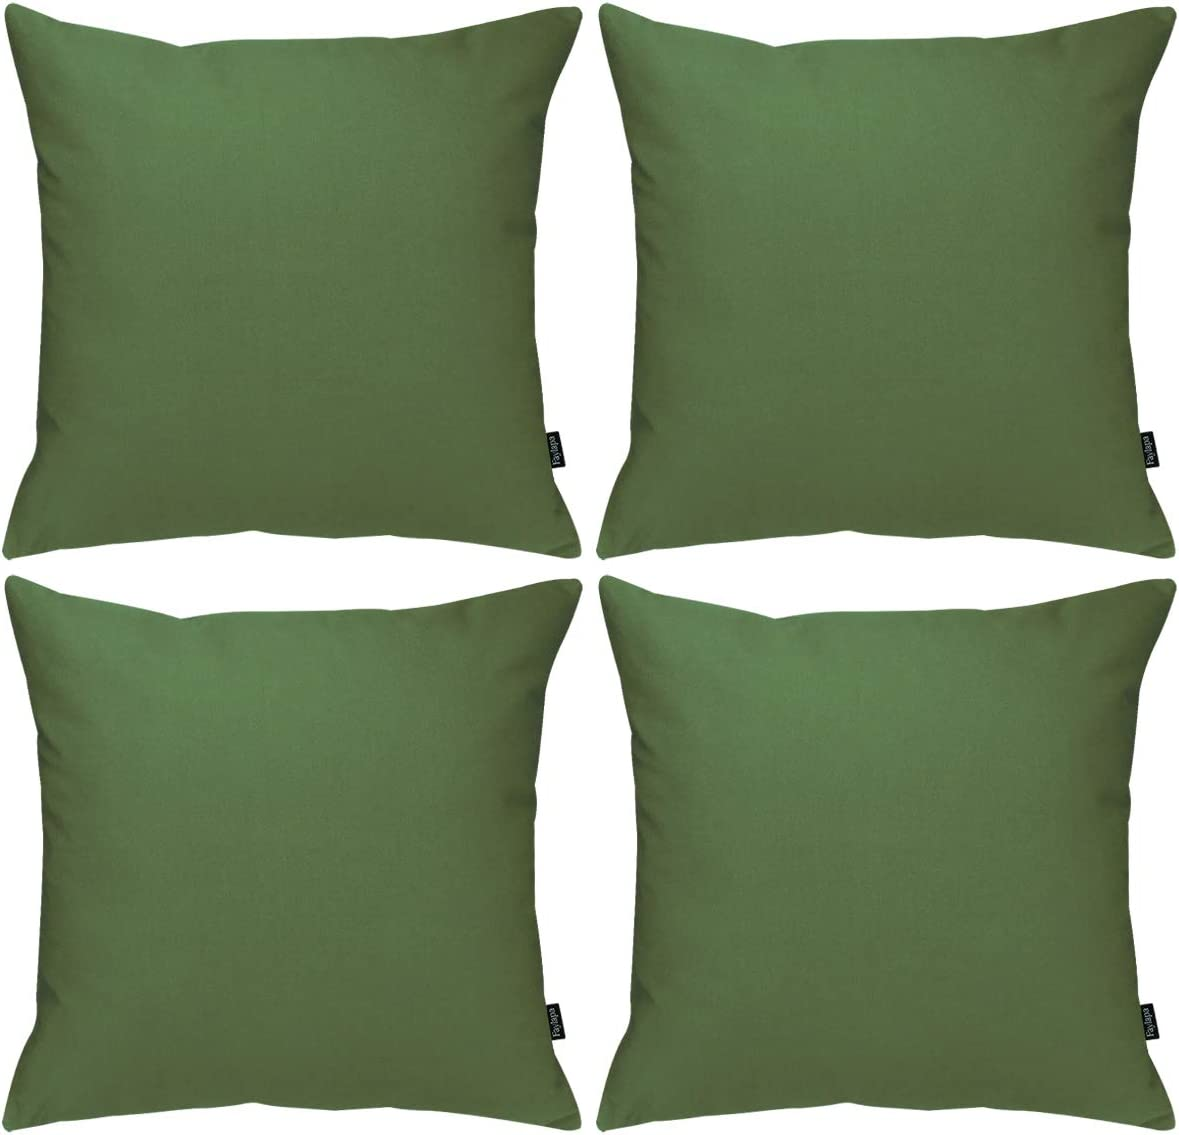 Manufacturer OFFicial shop Faylapa 4 Pcs Cotton Pillow Covers inch x Decor Classic Solid 18 Dyed